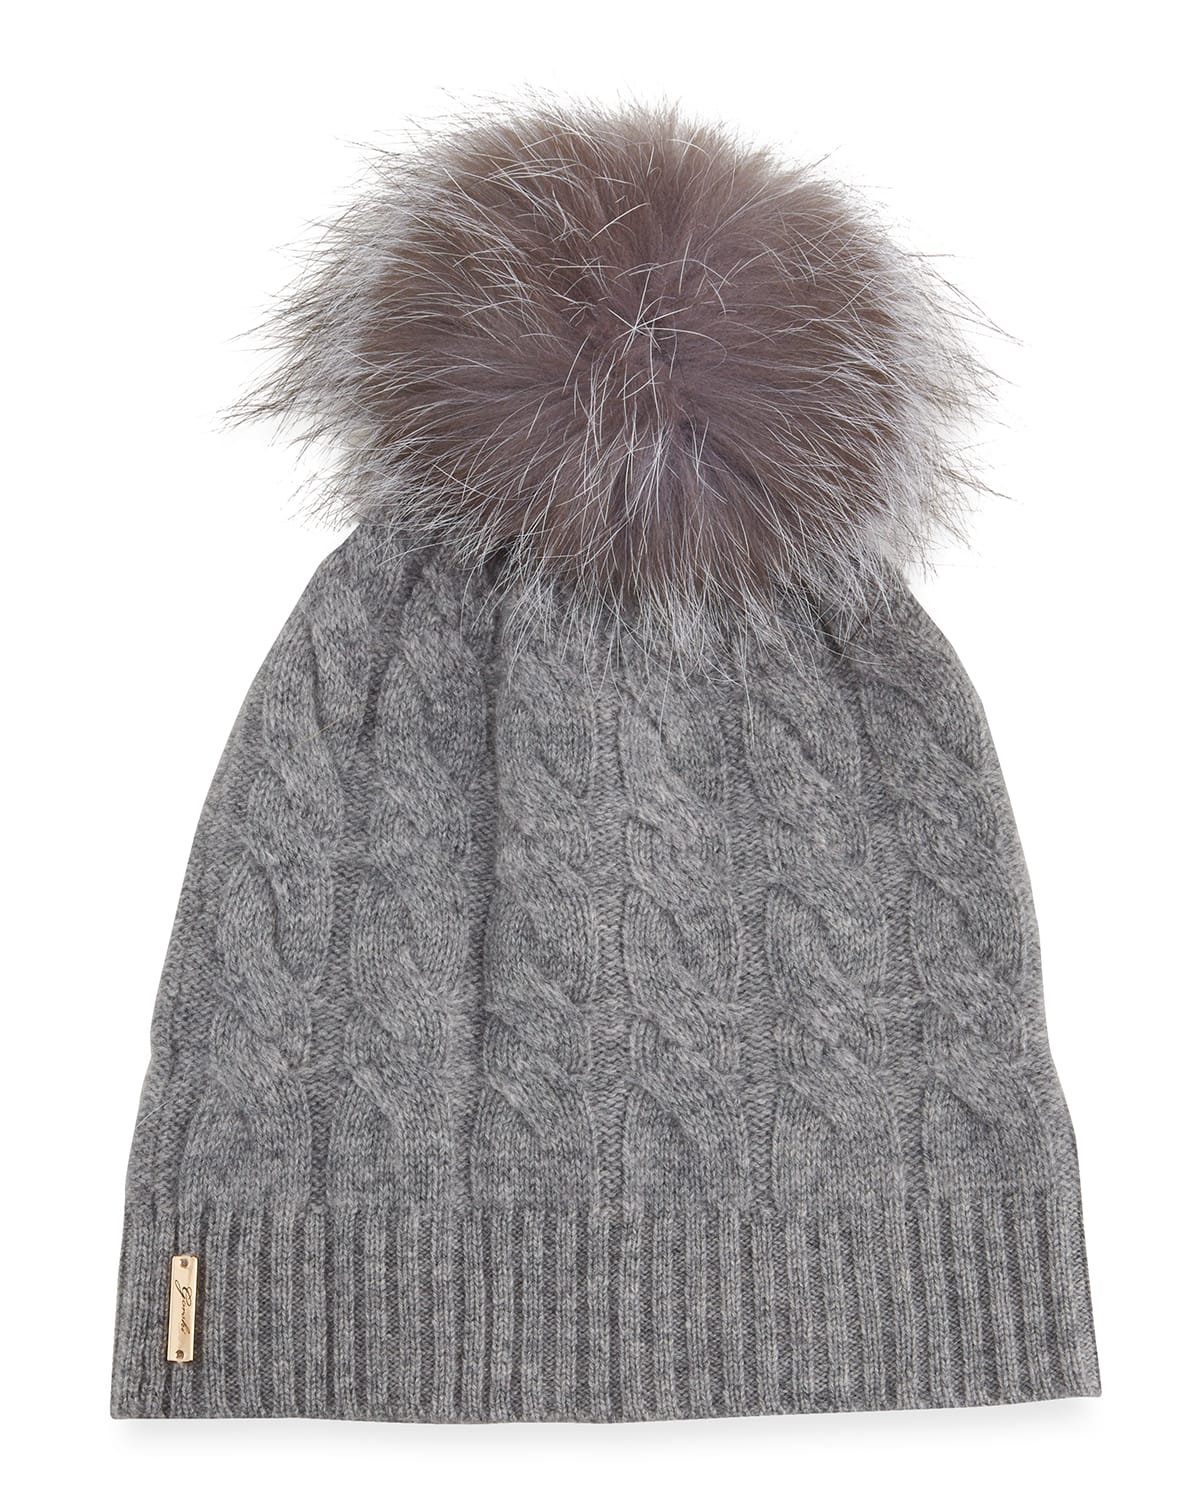 Cashmere Cable-Knit Beanie with Fur Pompom